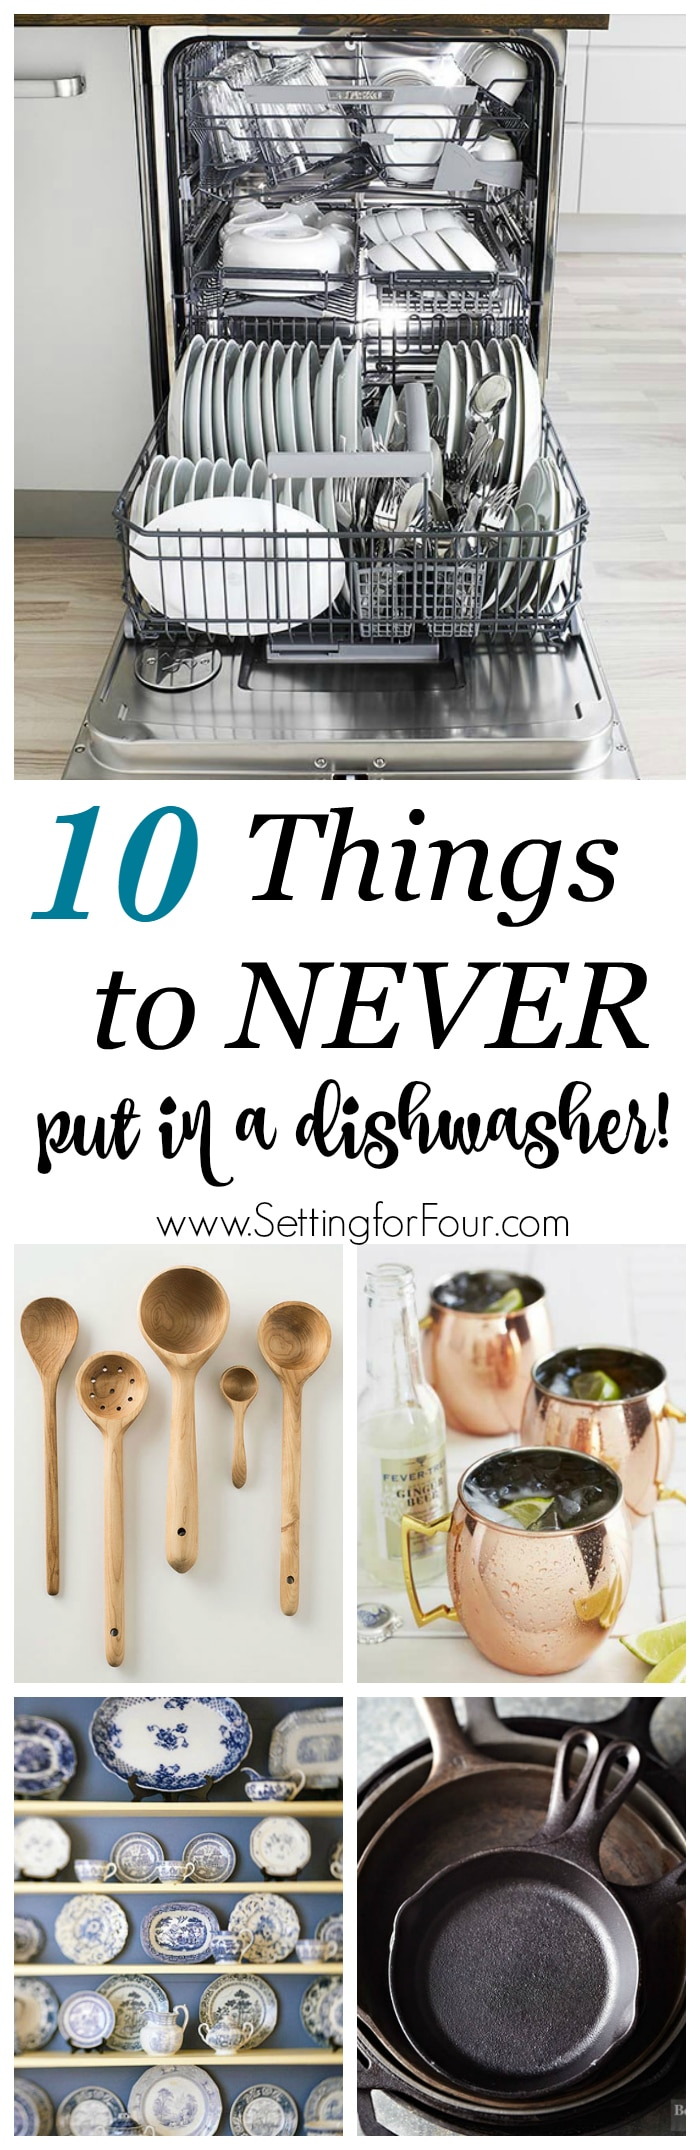 Dishwashers are an amazing convenience but did you know that there are many items that can get completely damaged in a dishwasher? Let's take a look at these need-to-know cleaning tips: the 10 things you should never put in a dishwasher and the reasons why!